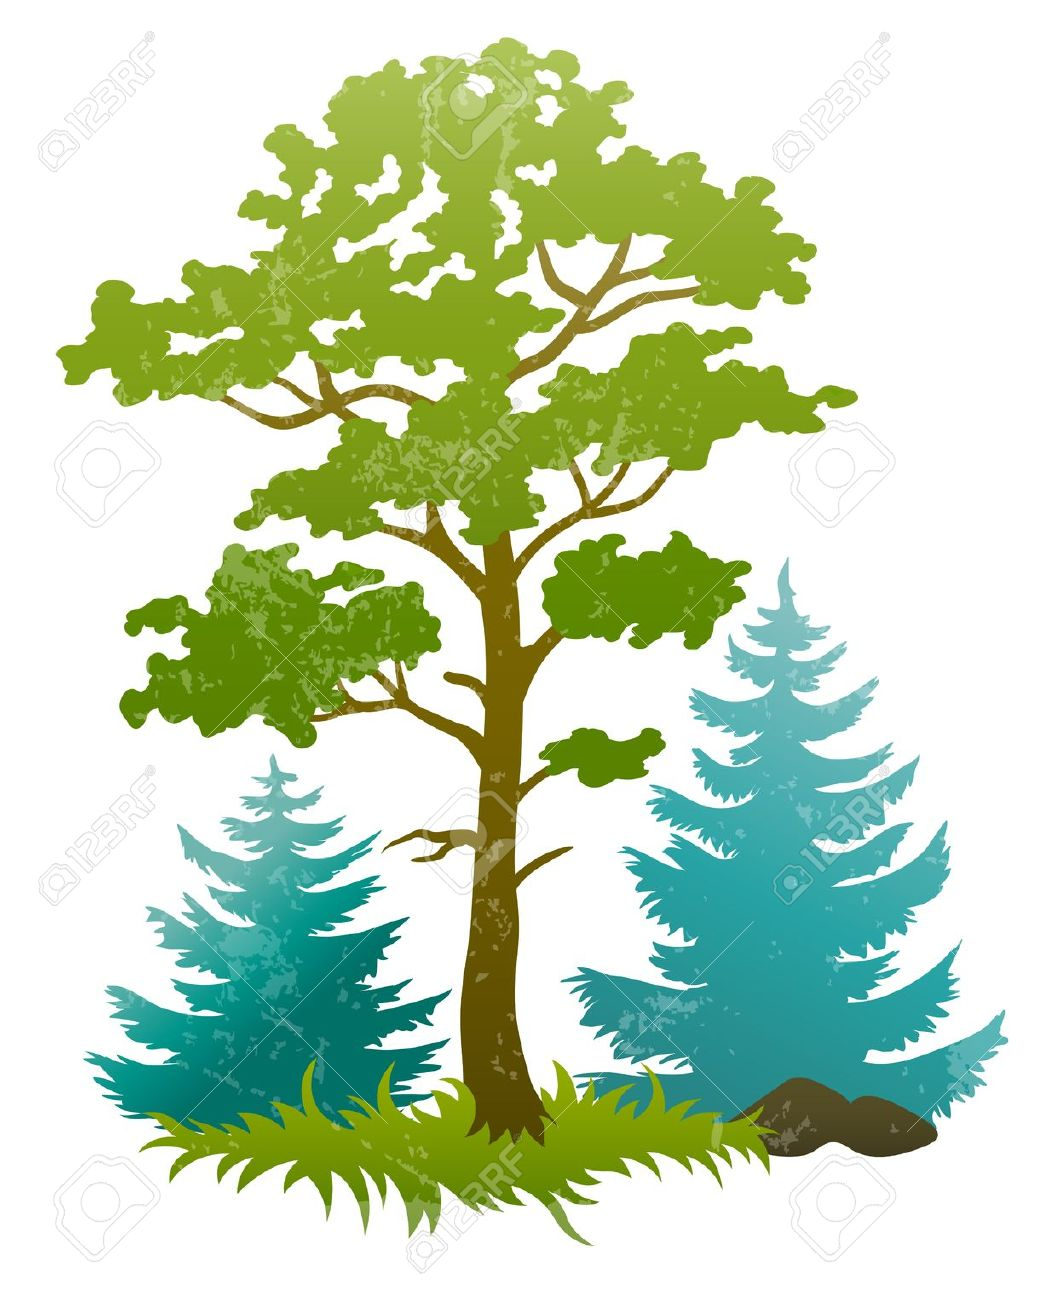 silhouette of forest at getdrawings com free for personal use rh getdrawings com forest clipart backgrounds free forest clipart backgrounds